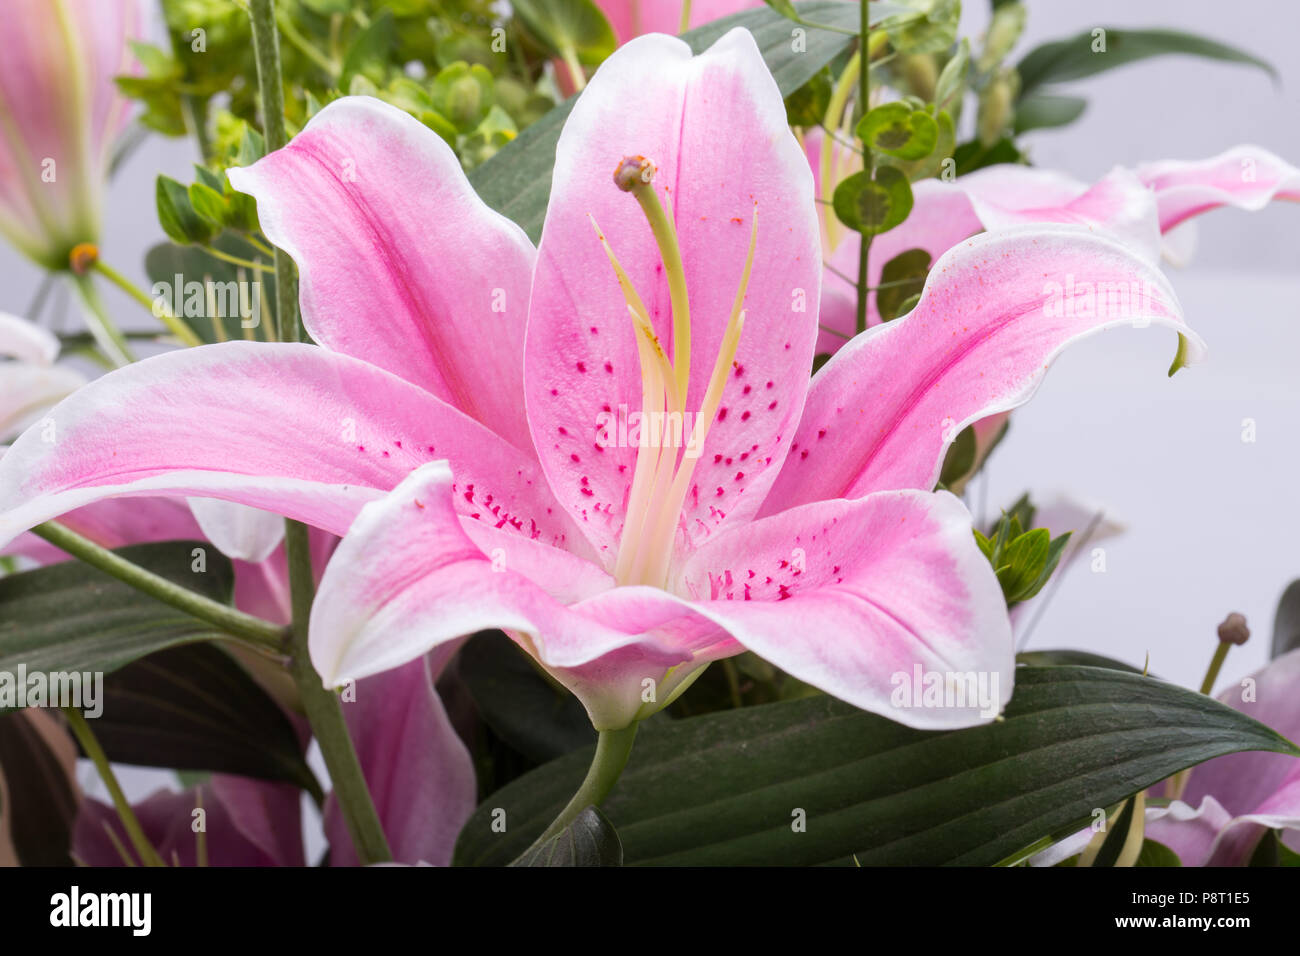 Pink magic lily stock photos pink magic lily stock images alamy close up of pink lily flower stock image izmirmasajfo